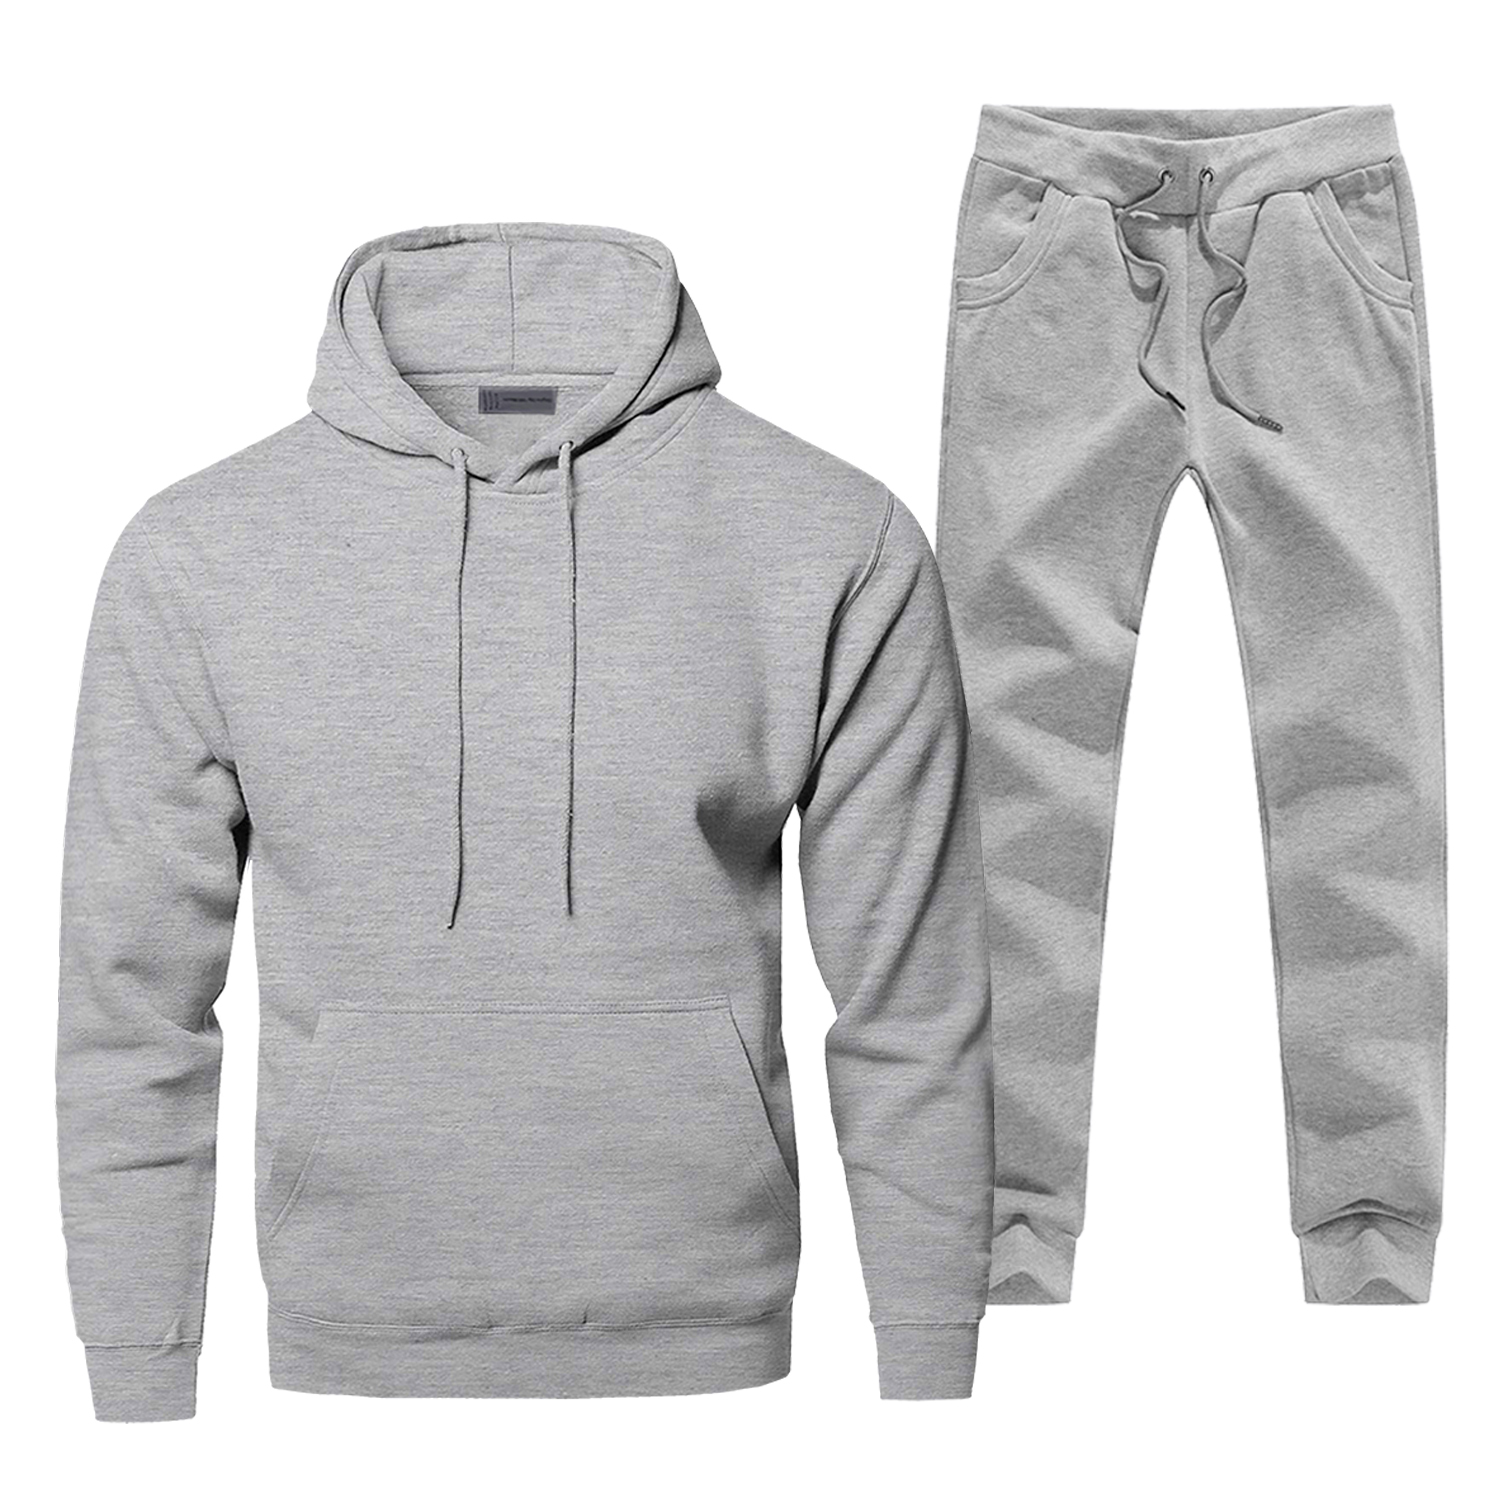 Solid Color Mens Full Suit Tracksuit Simple Style Sweatpants Hoodies For Men Pure Color 2 Piece Set Fitness Sets Warm Streetwear